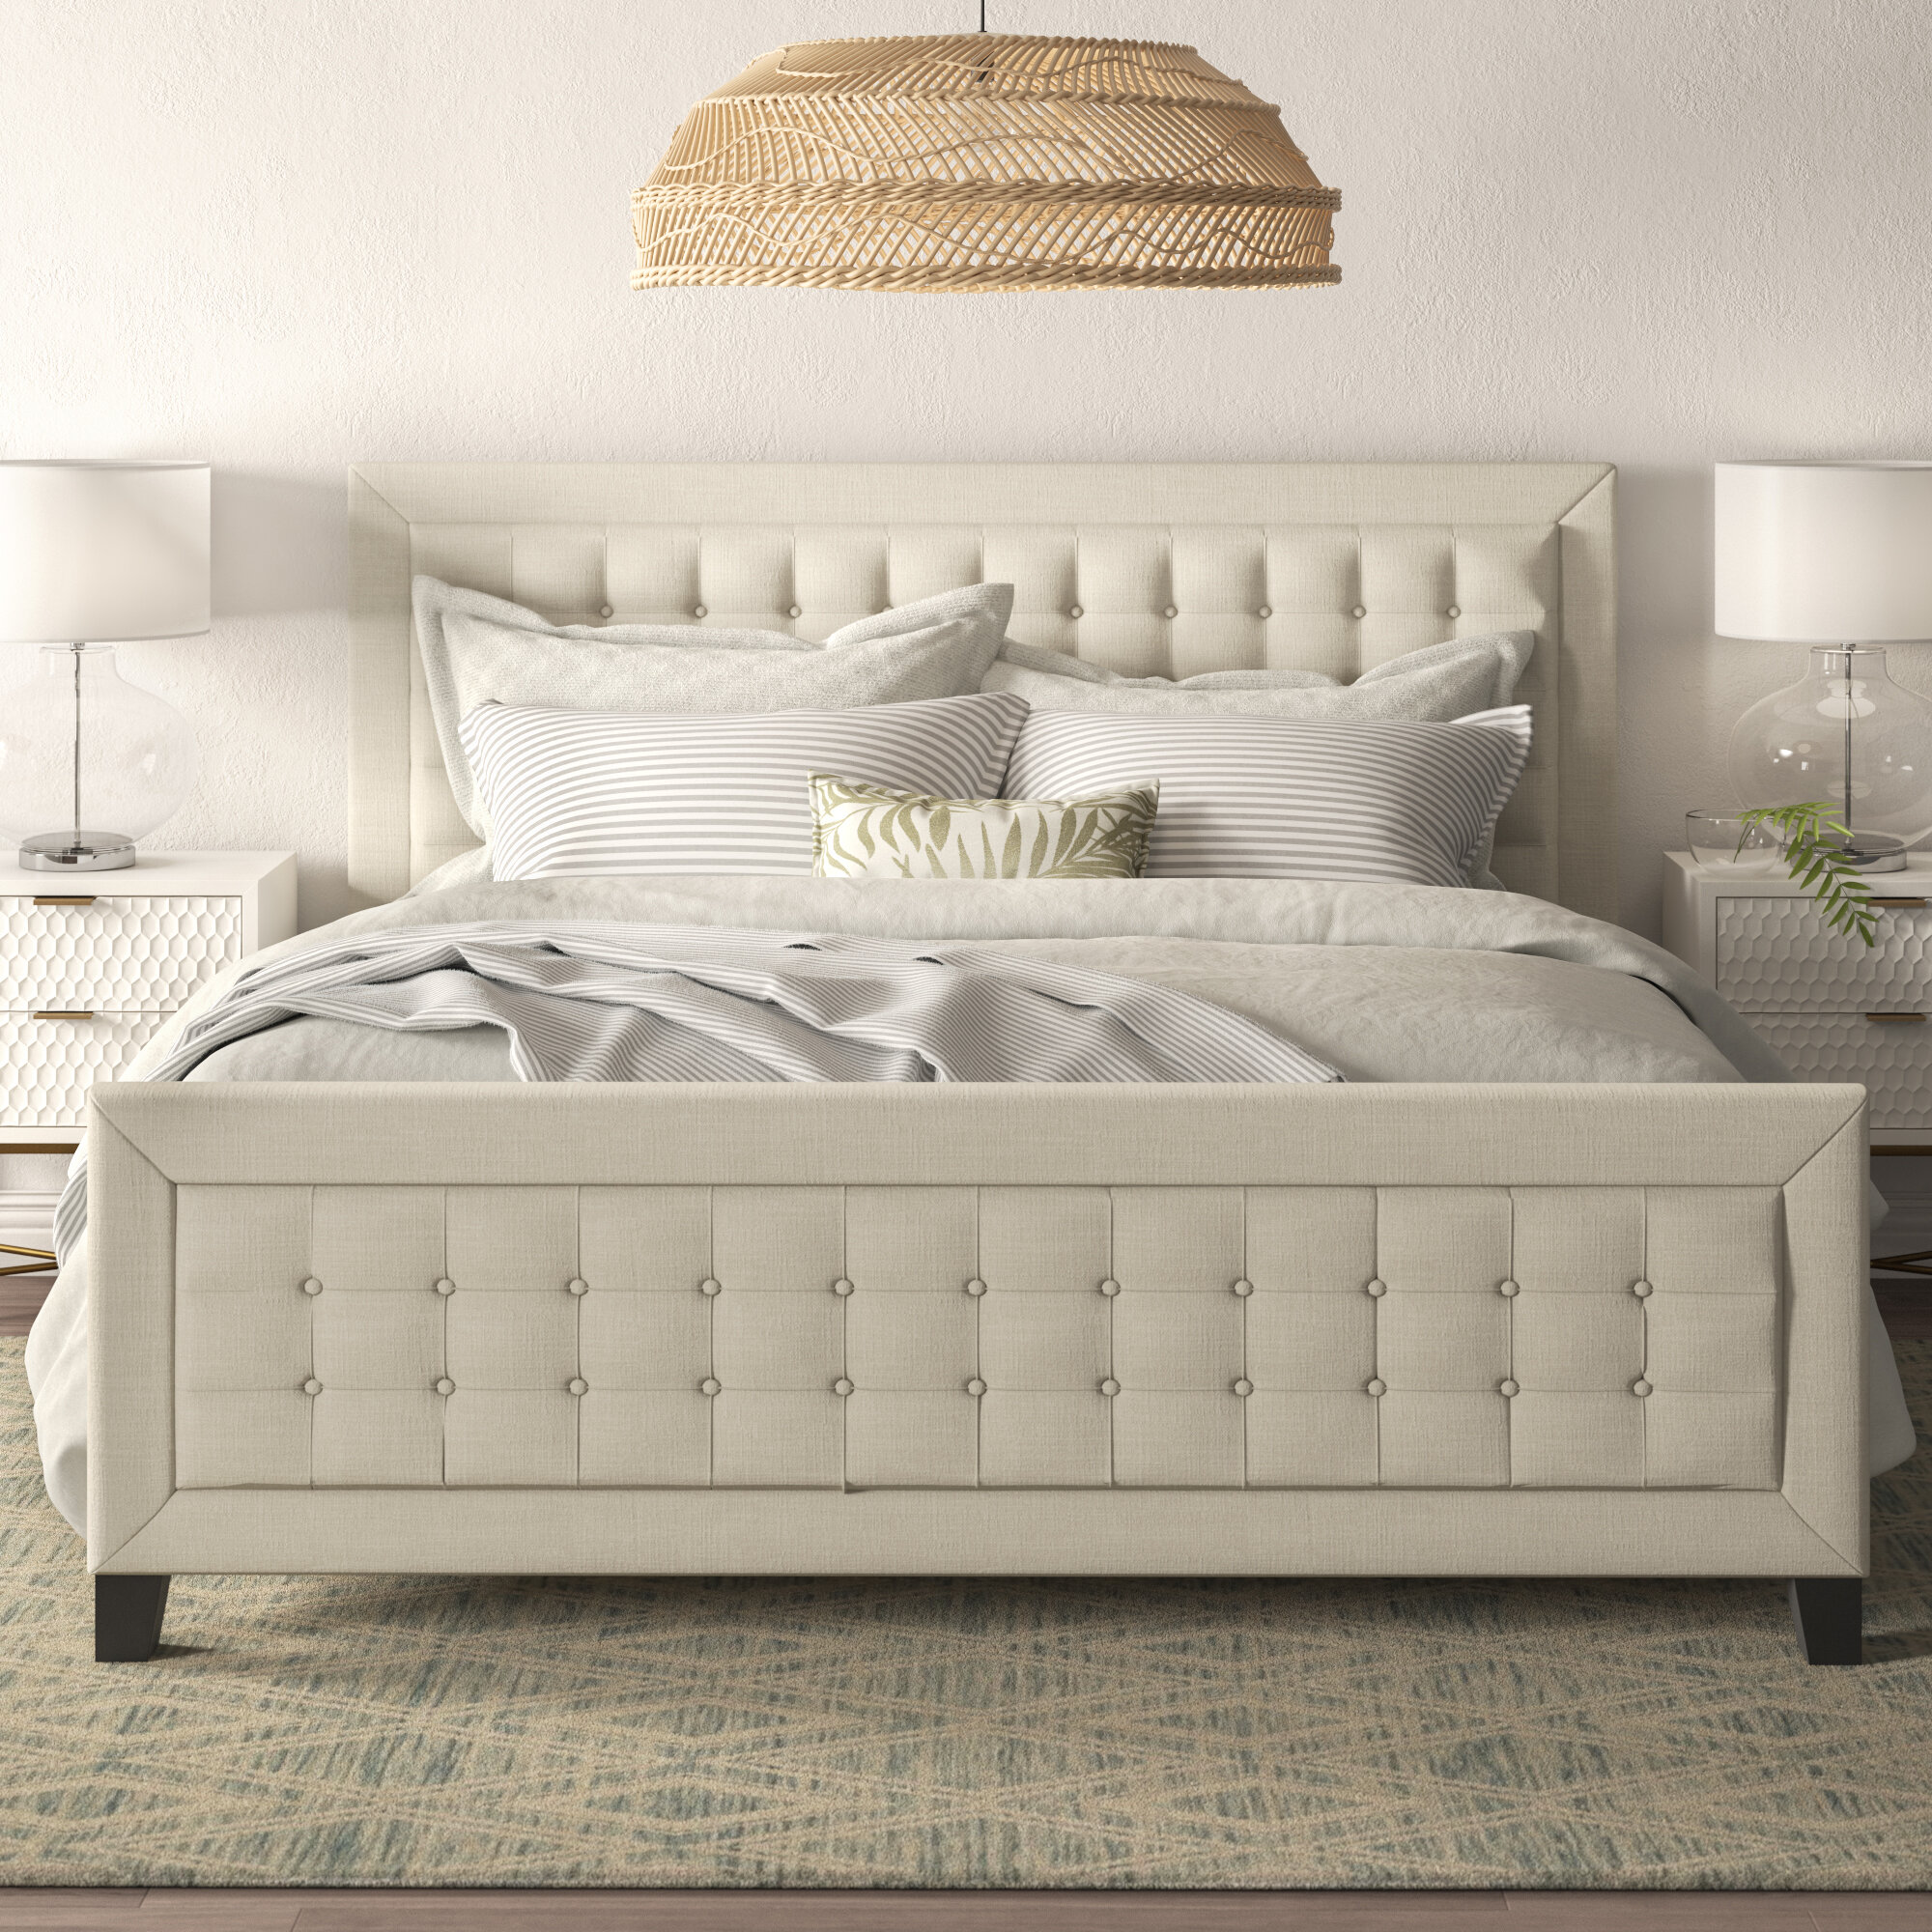 Isolde Grid Tufted Upholstered Panel Bed With Footboard Reviews Joss Main